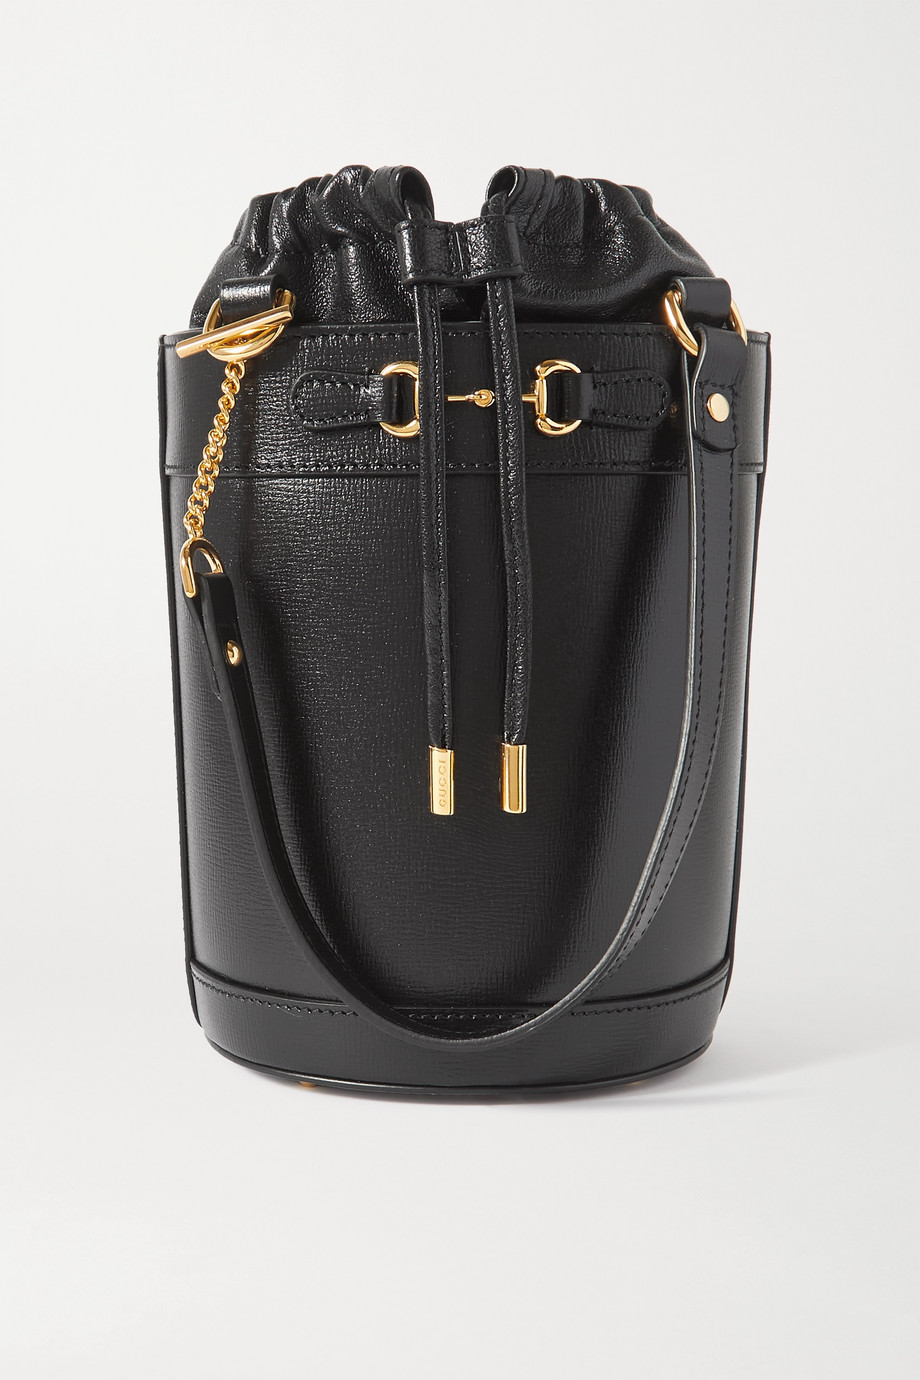 Gucci 1995 Horsebit leather bucket bag